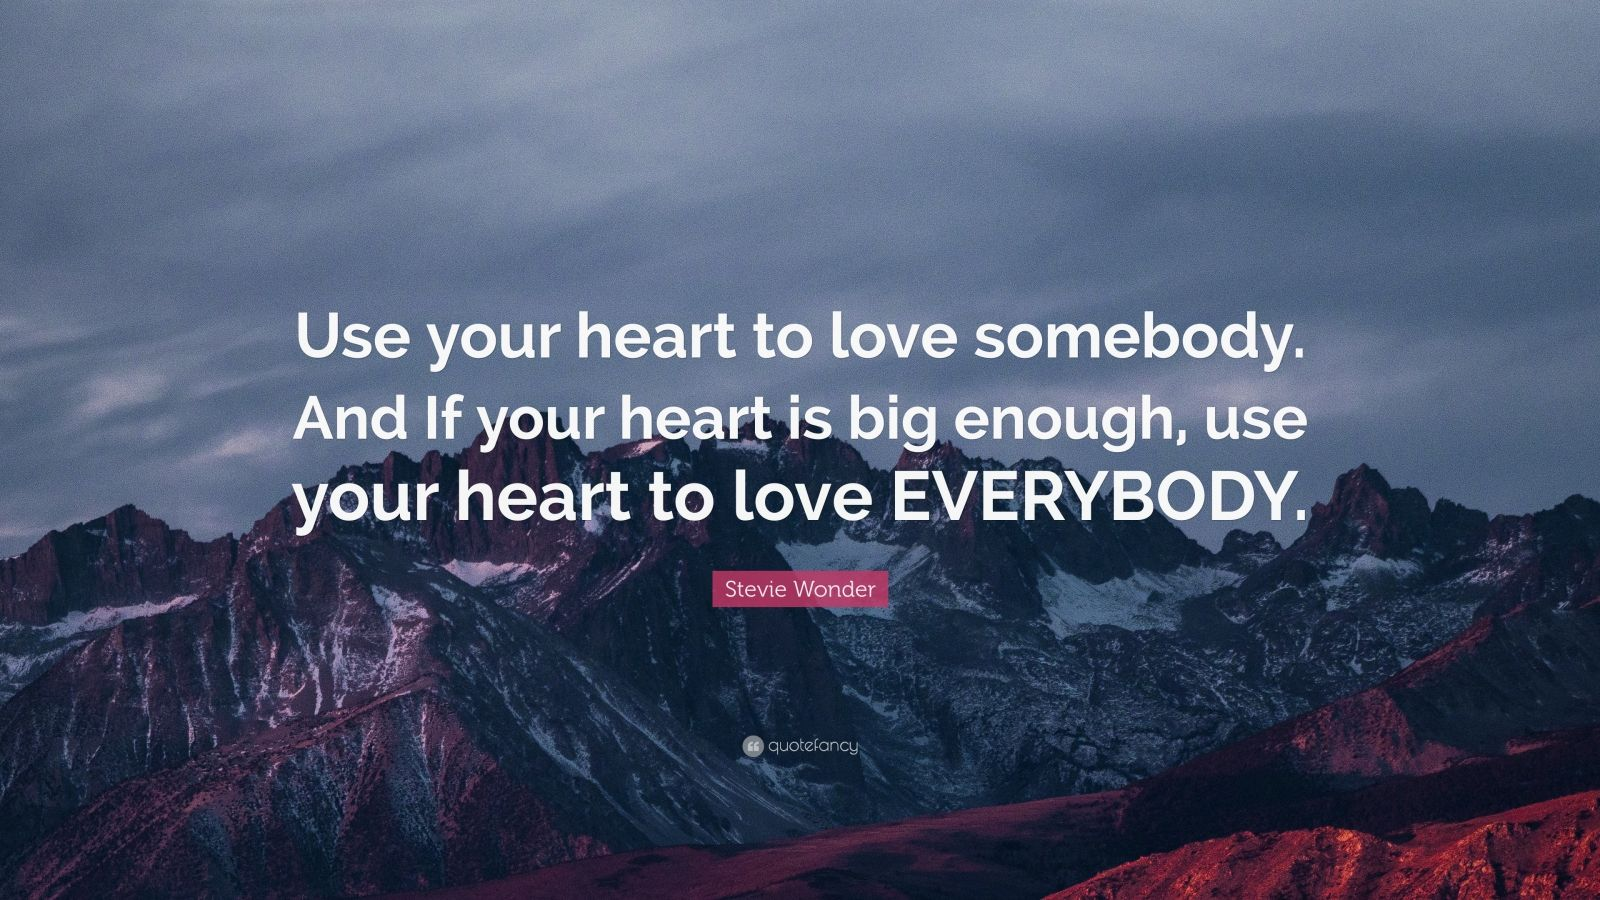 """Stevie Wonder Quote: """"Use your heart to love somebody. And If your heart is big enough, use your heart to love EVERYBODY."""""""